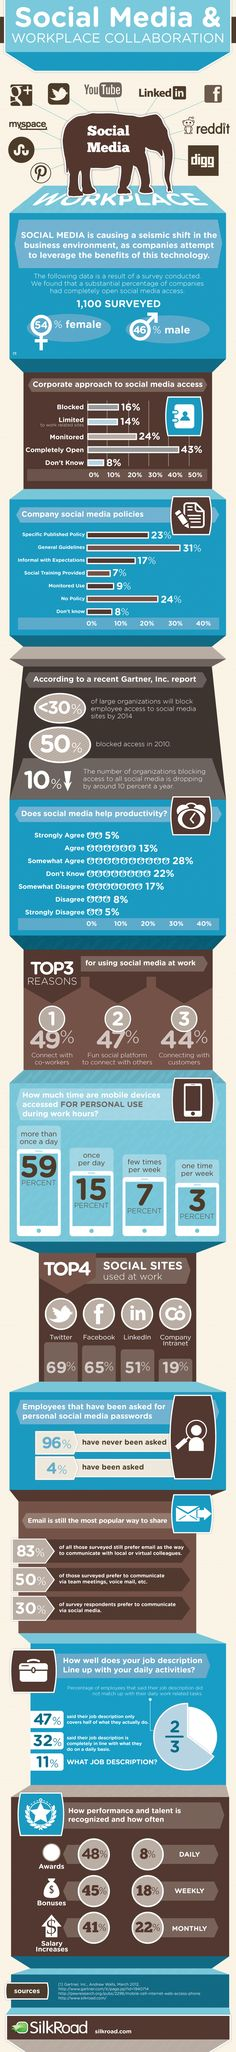 Social Media & Workplace Collaboration